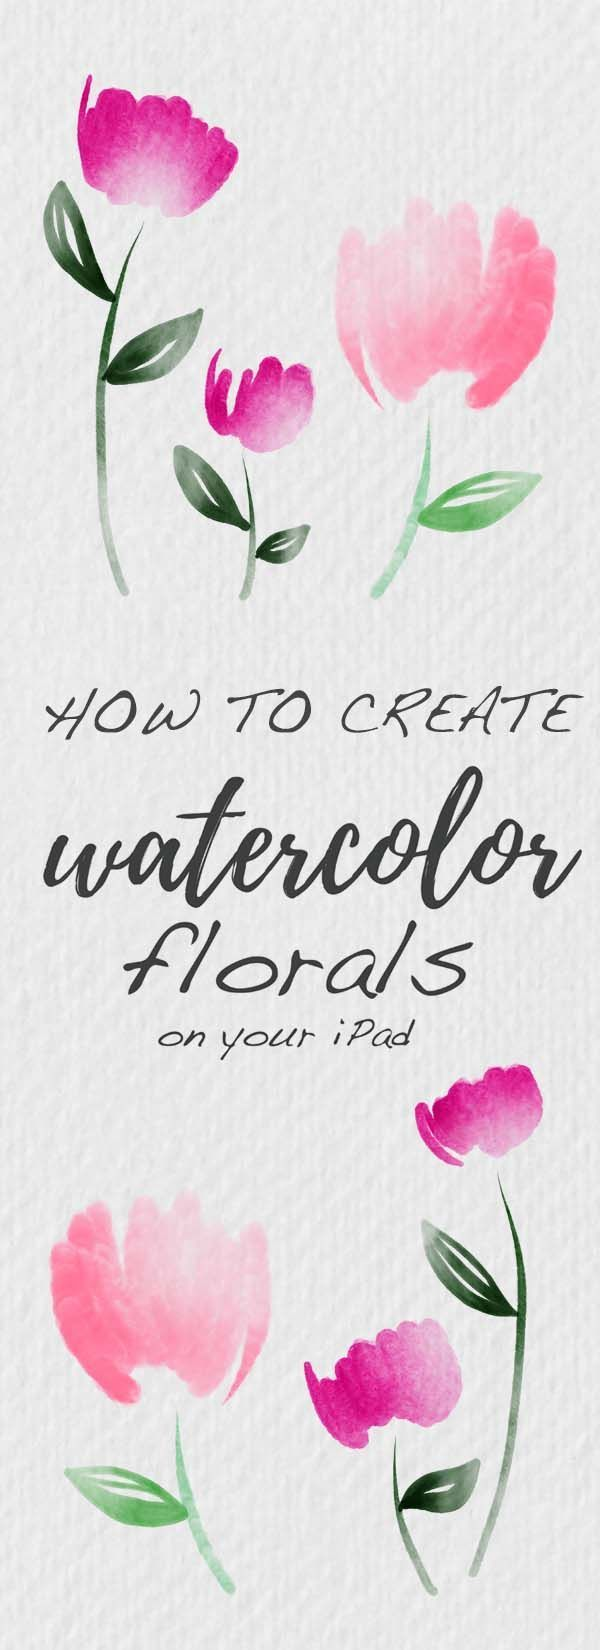 How to Create Watercolor Florals on Your iPad - I want to show you how to create beautiful watercolor florals on your iPad using the app Procreate. We'll cover watercolor methods like layering, darkening, and masking fluid. I'll show you how to make everything from abstract ink and watercolor paintings to loose modern floral bouquets. I made 10 watercolor brushes and a watercolor texture paper that I want to share with you as free downloads. to Create Watercolor Florals on Your iPad - I want to show you how to create beautiful watercolor florals on your iPad using the app Procreate. We'll cover watercolor methods like layering, darkening, and masking fluid. I'll show you how to make everything from abstract ink and watercolor paintings to loose modern fl...